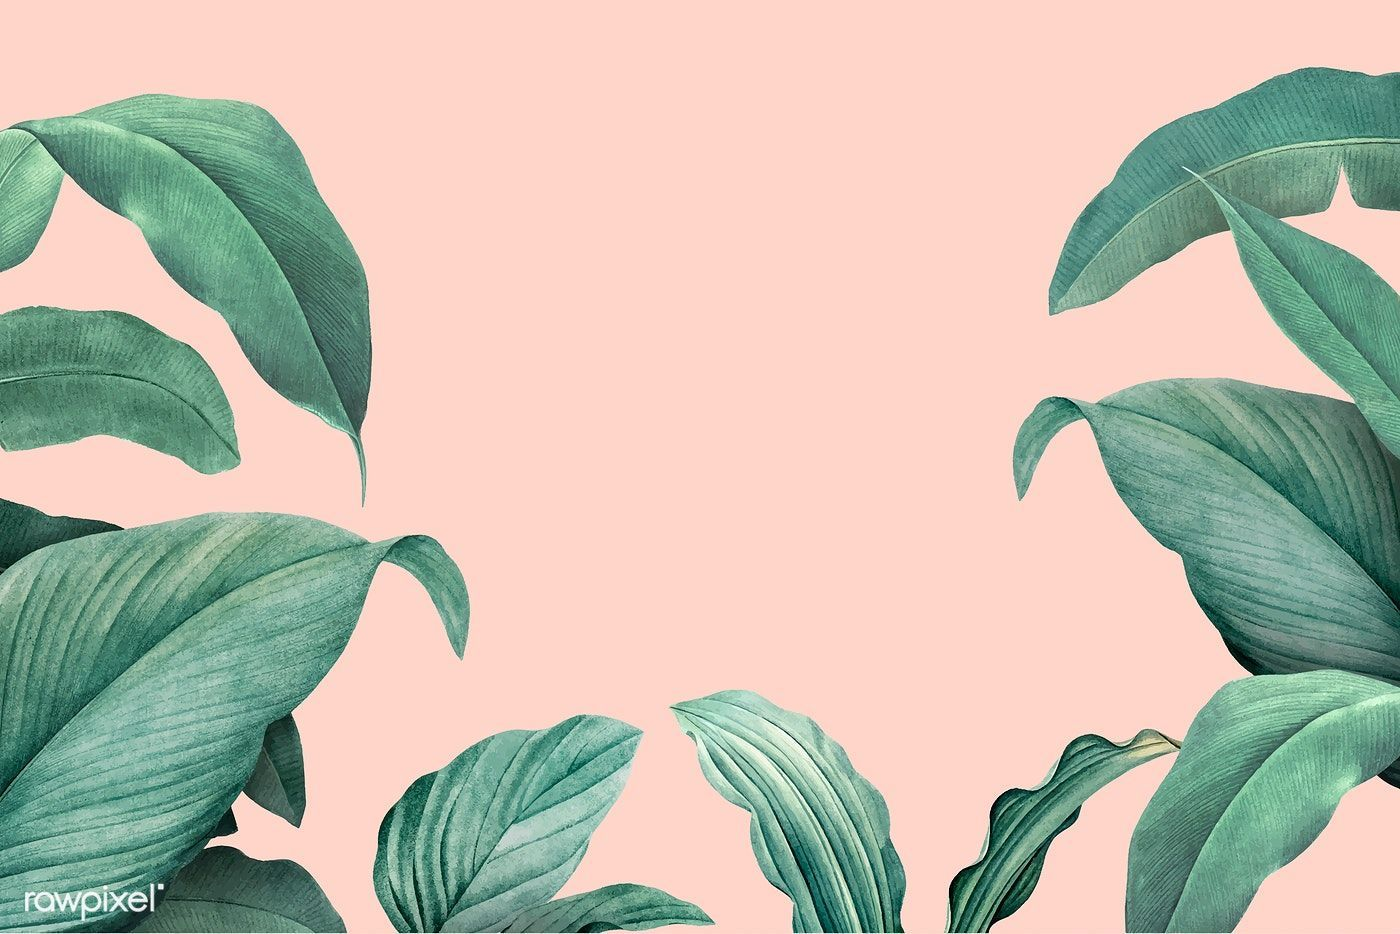 Download Premium Vector Of Hand Drawn Tropical Leaves On A Pastel Pink How To Draw Hands Tropical Leaves Pink Leaves A collection of the top 64 tropical aesthetic wallpapers and backgrounds available for download for free. download premium vector of hand drawn